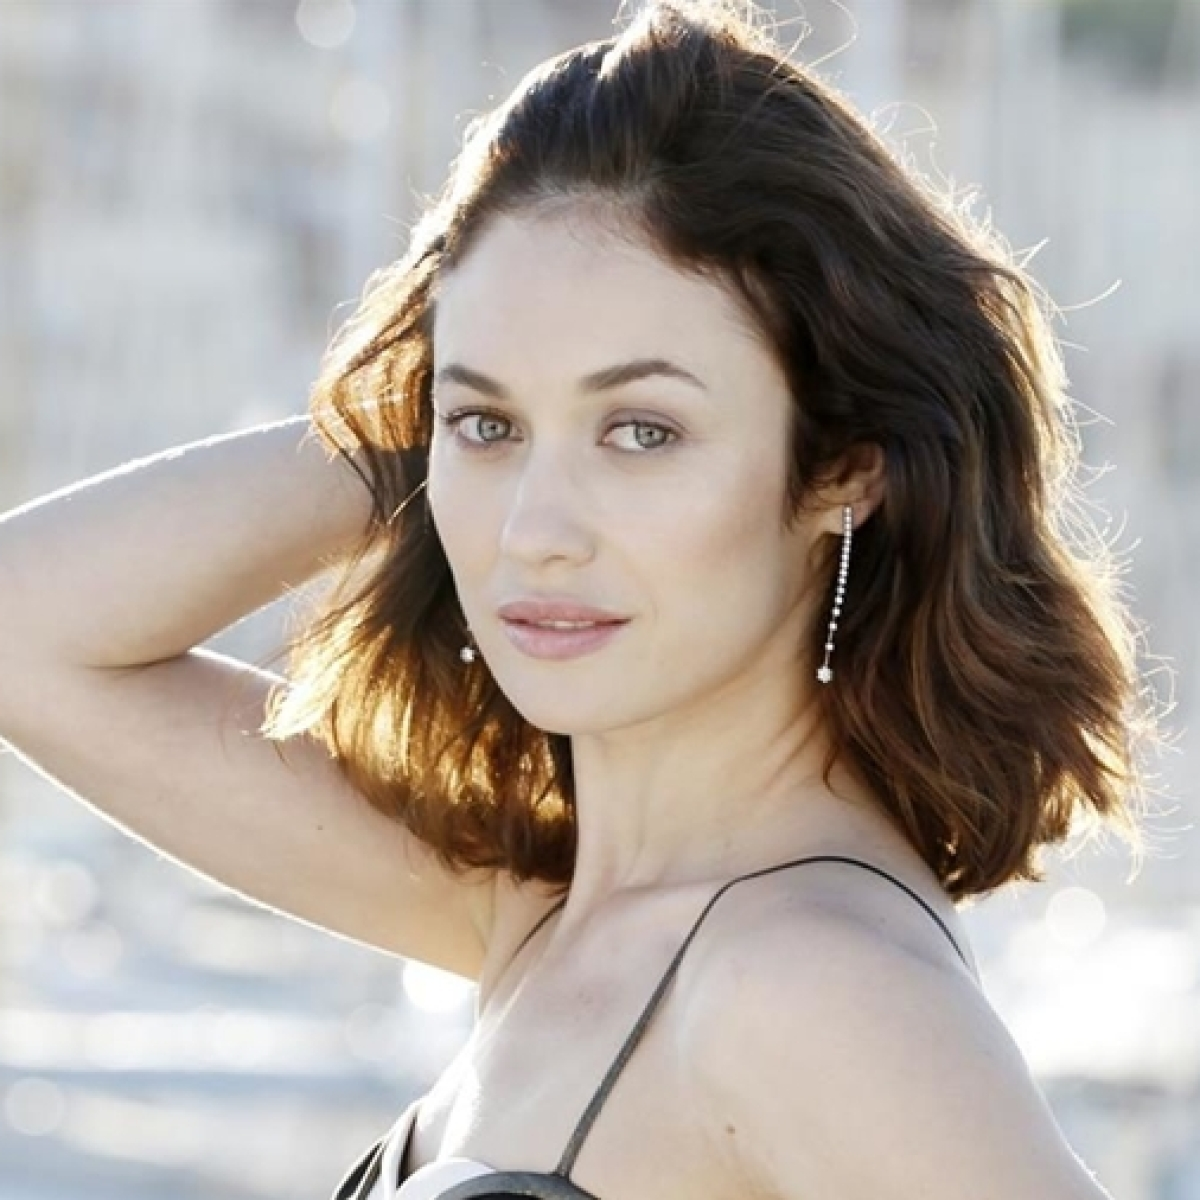 After Tom Hanks, 'Oblivion' actress Olga Kurylenko tests positive for coronavirus